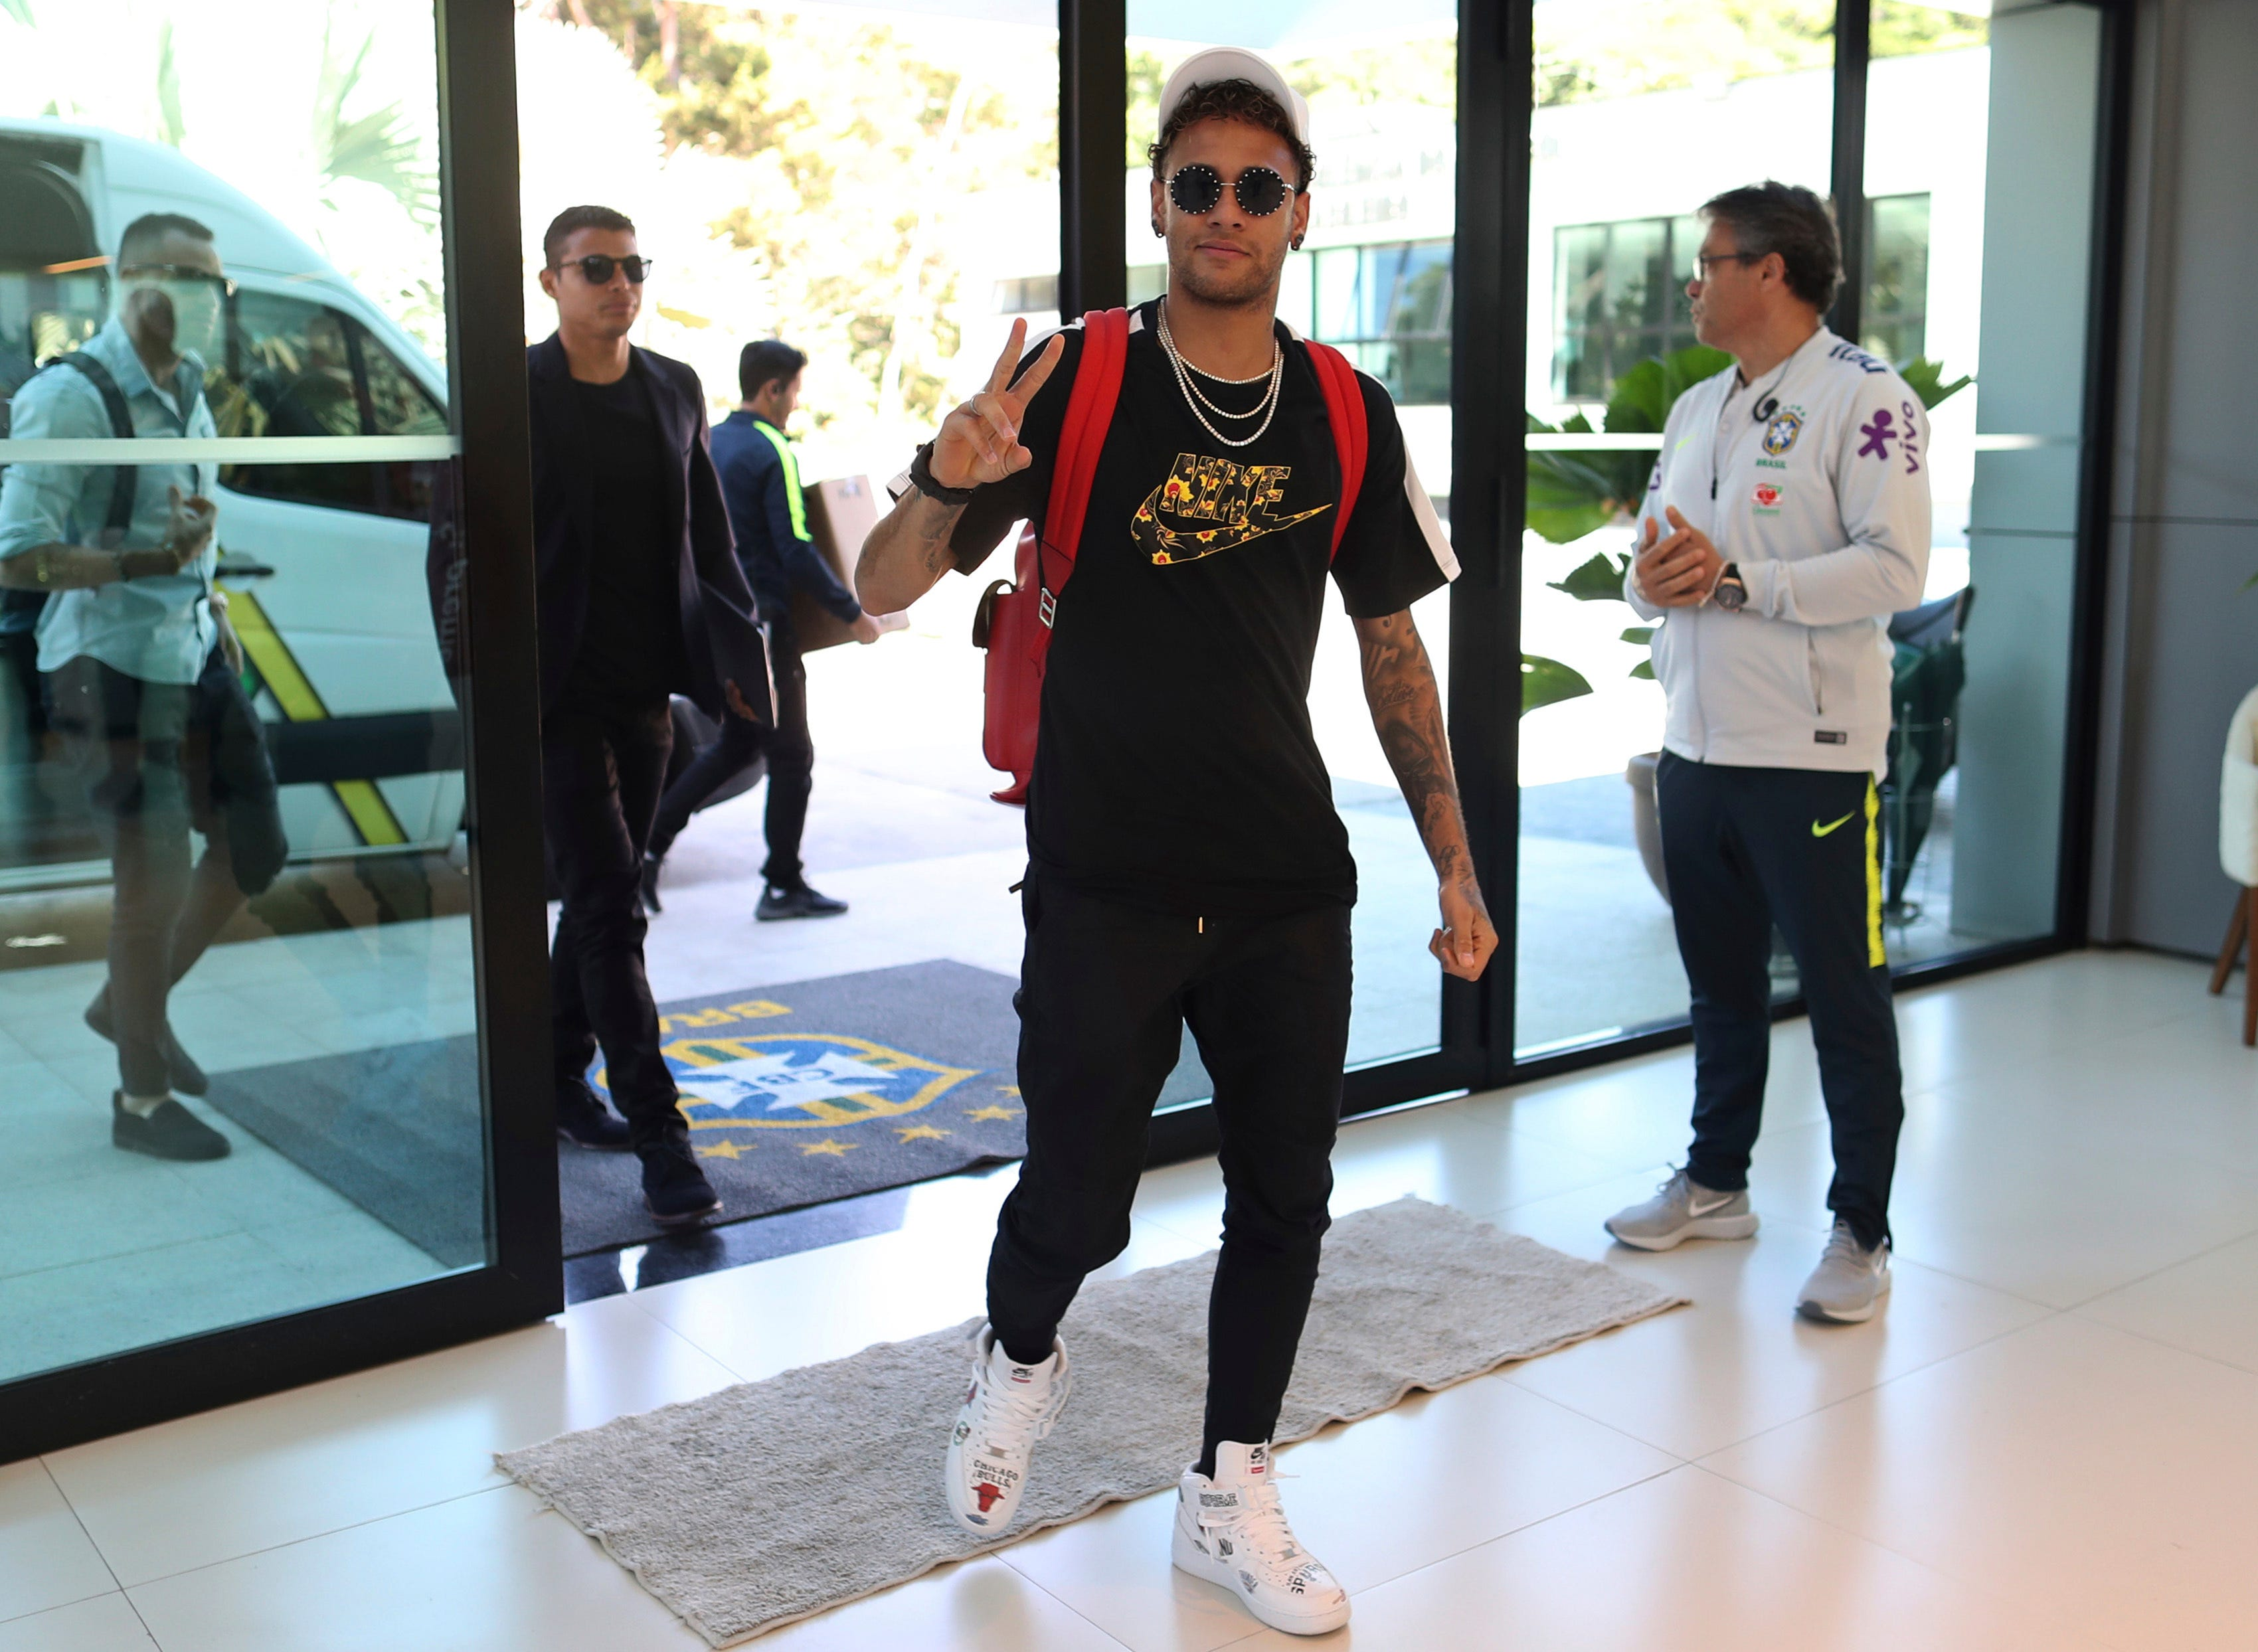 Brazil wants to lower Neymar's expectations for World Cup